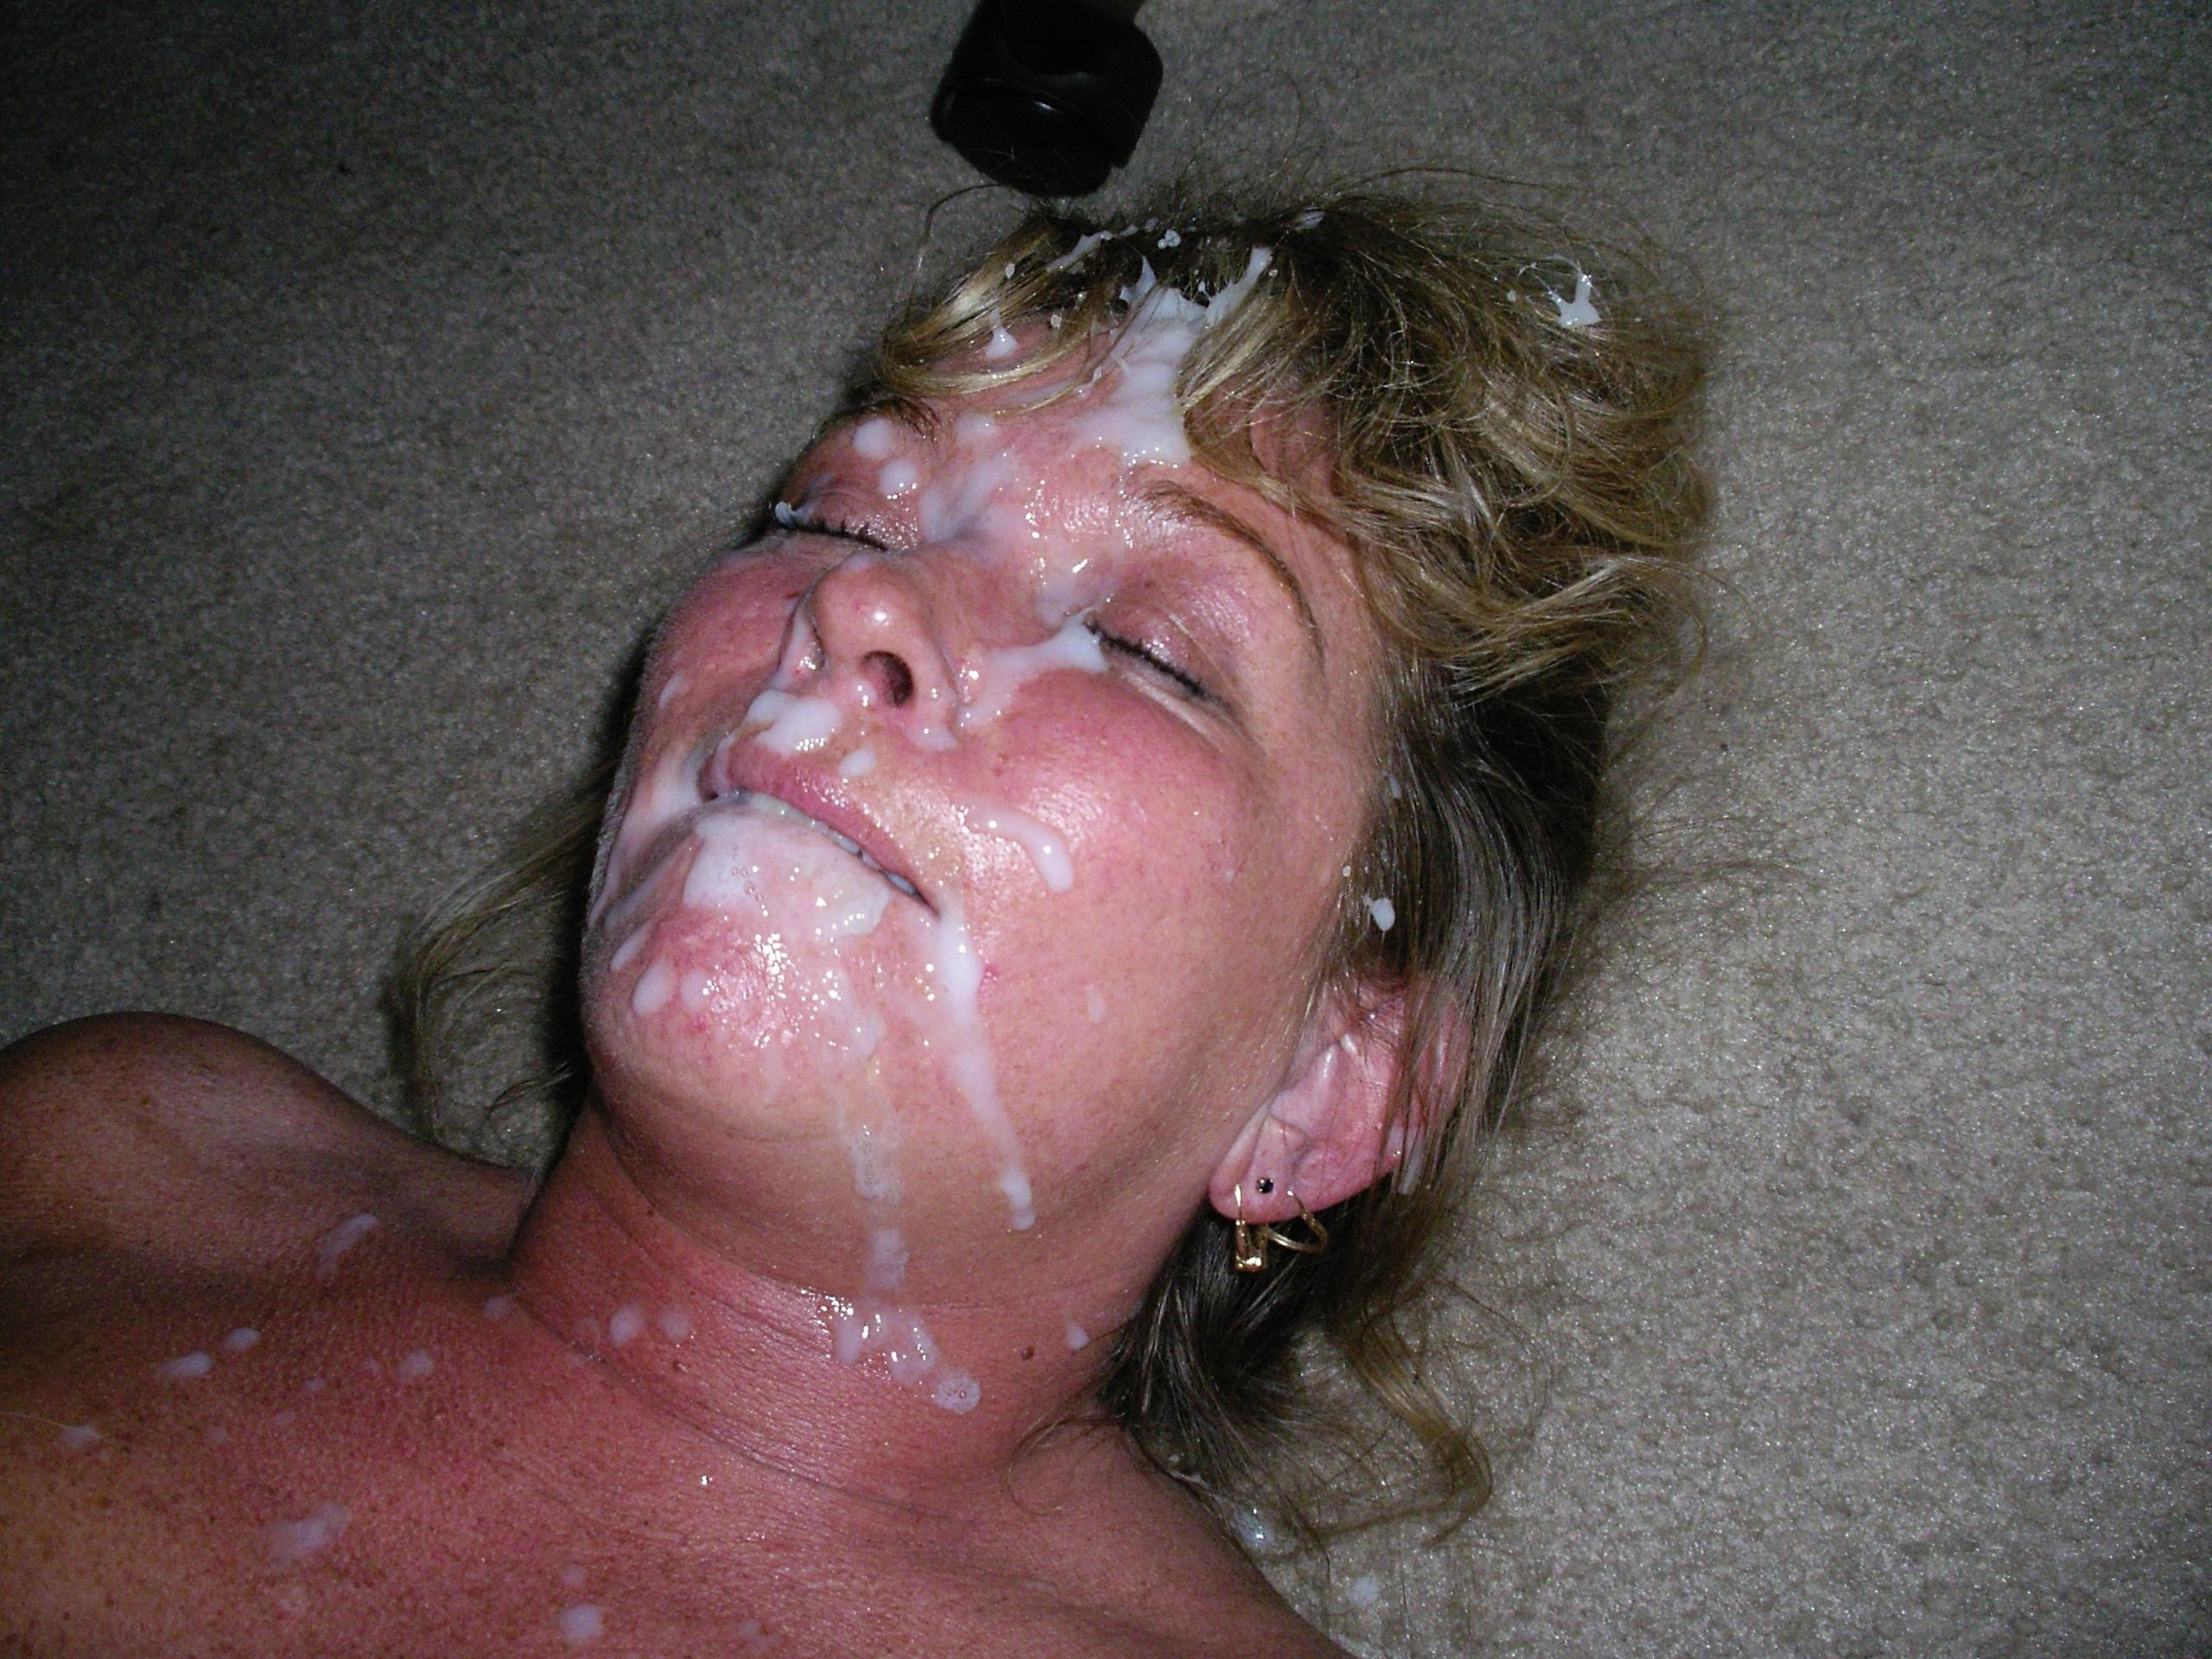 girls-world-youporn-wife-facial-sex-movie-tags